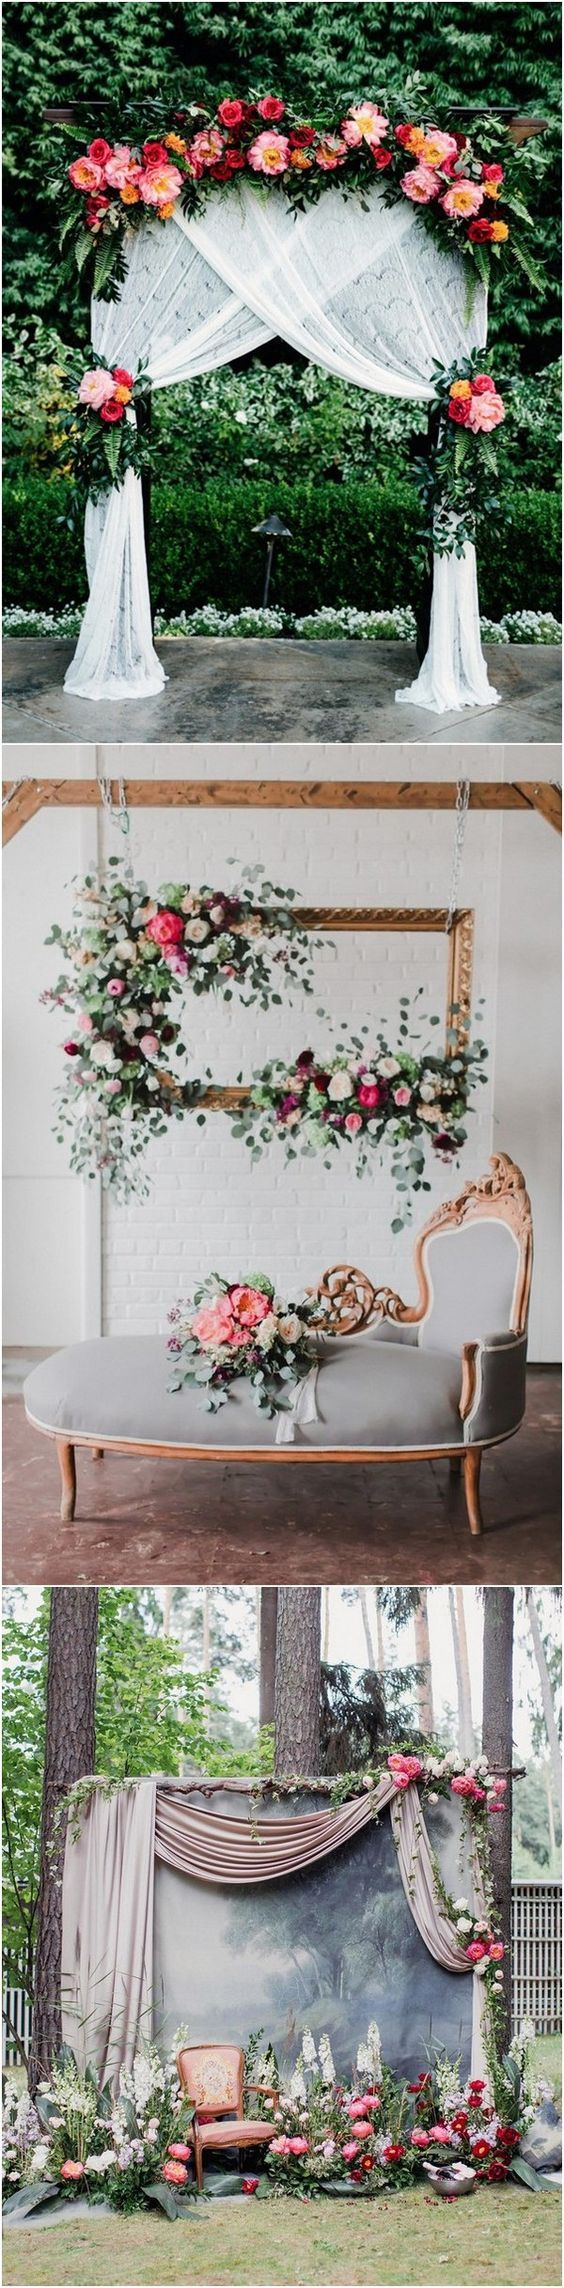 Trending hottest wedding backdrop ideas for your ceremony